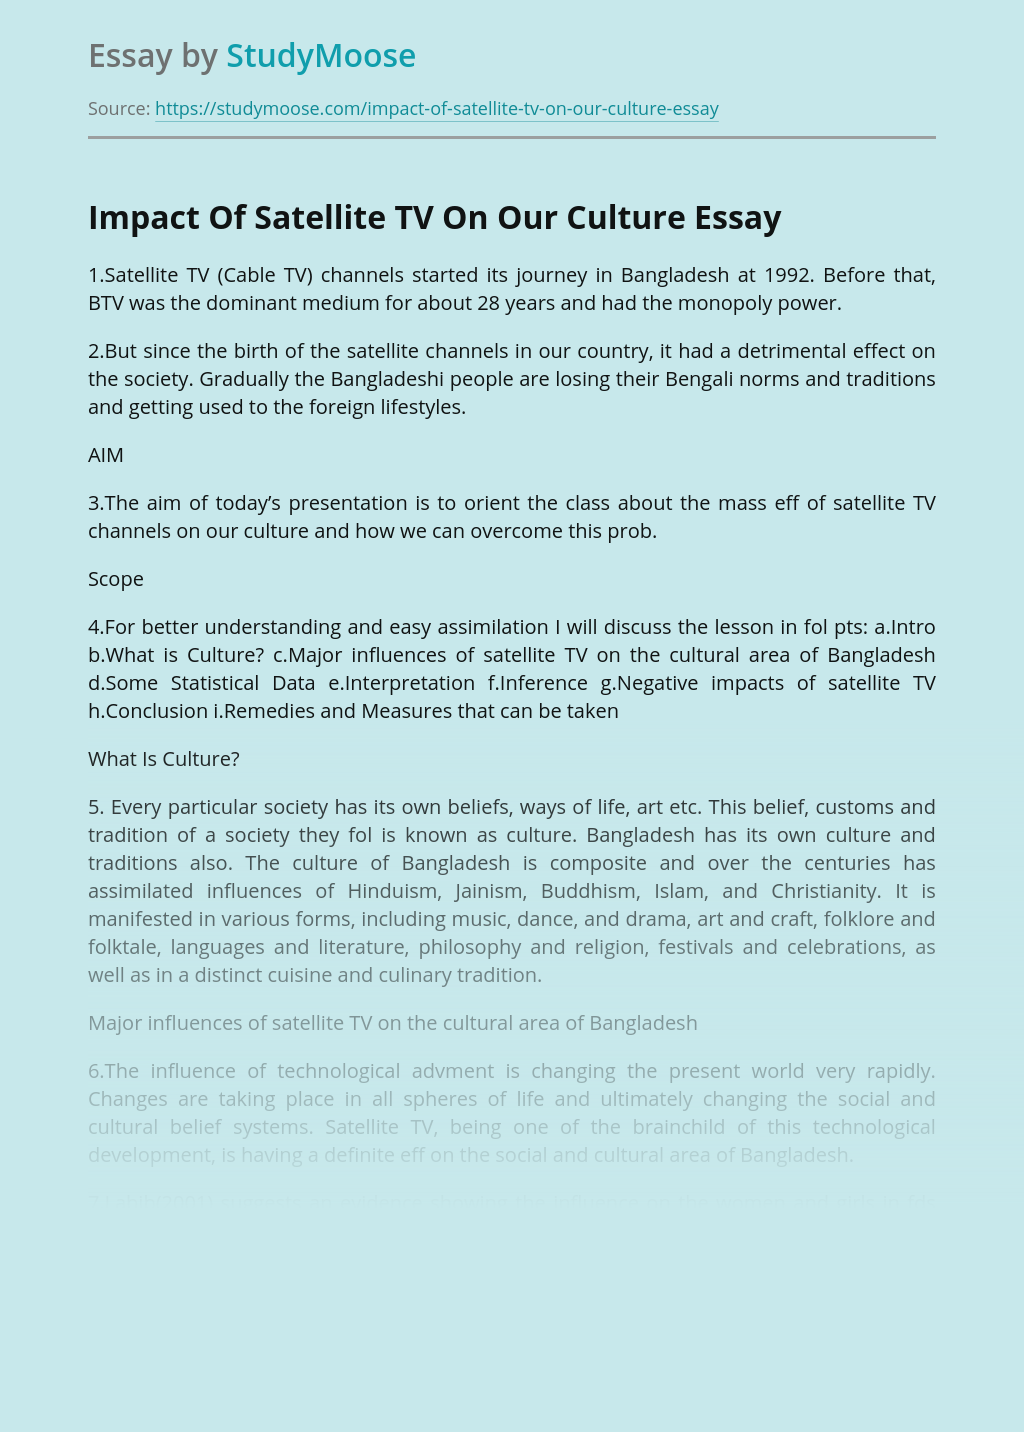 Impact Of Satellite TV On Our Culture